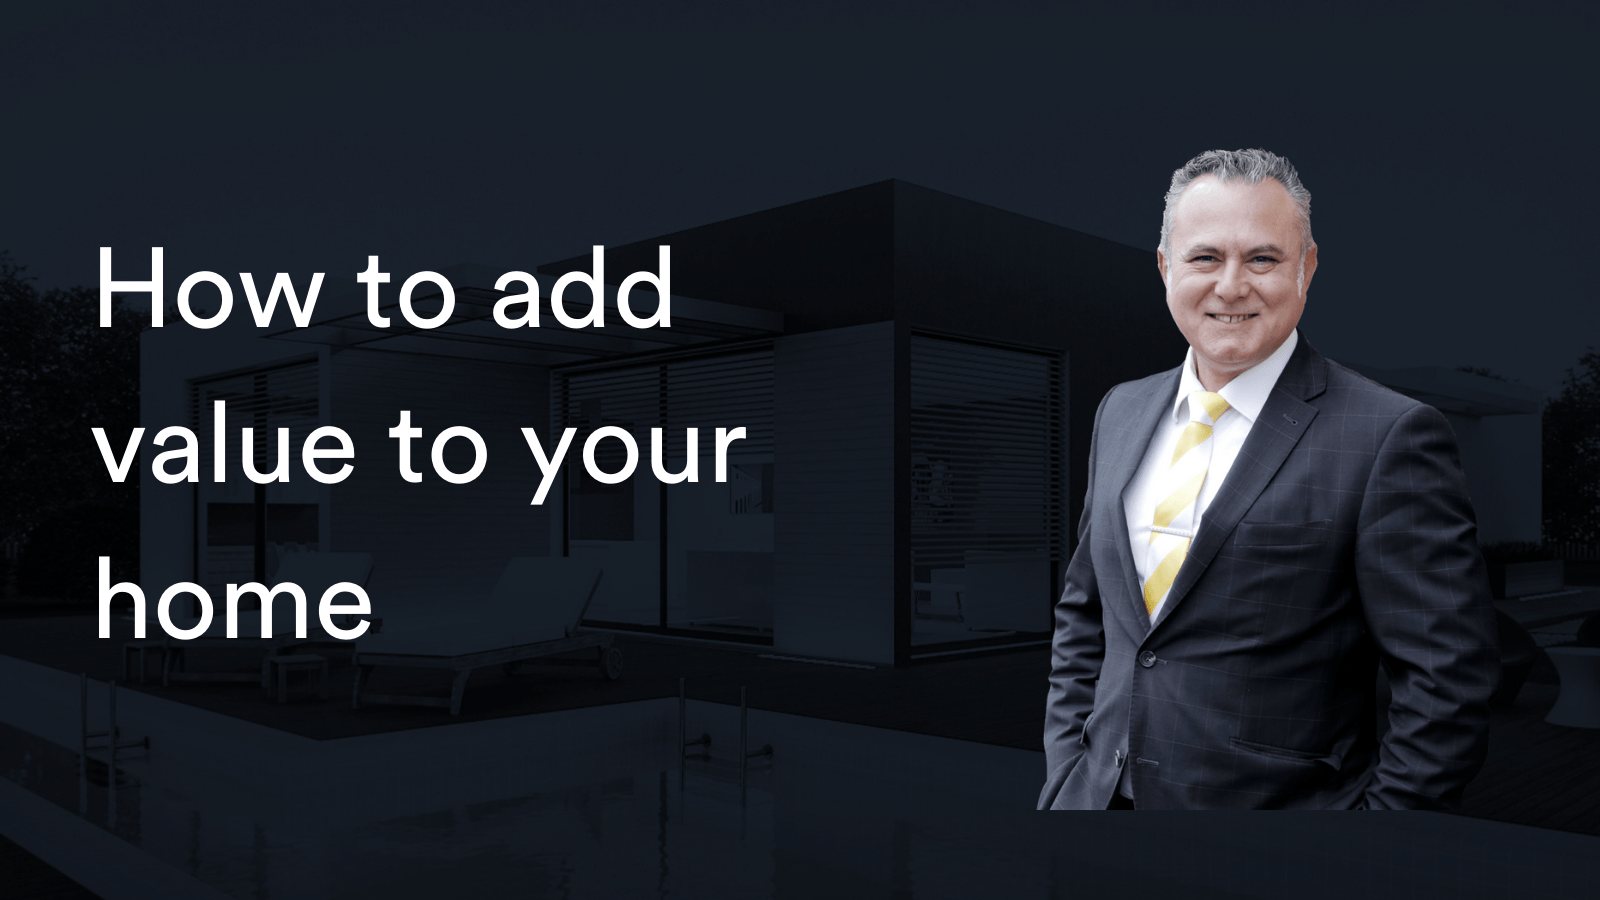 Masterclass: How to add value to your home